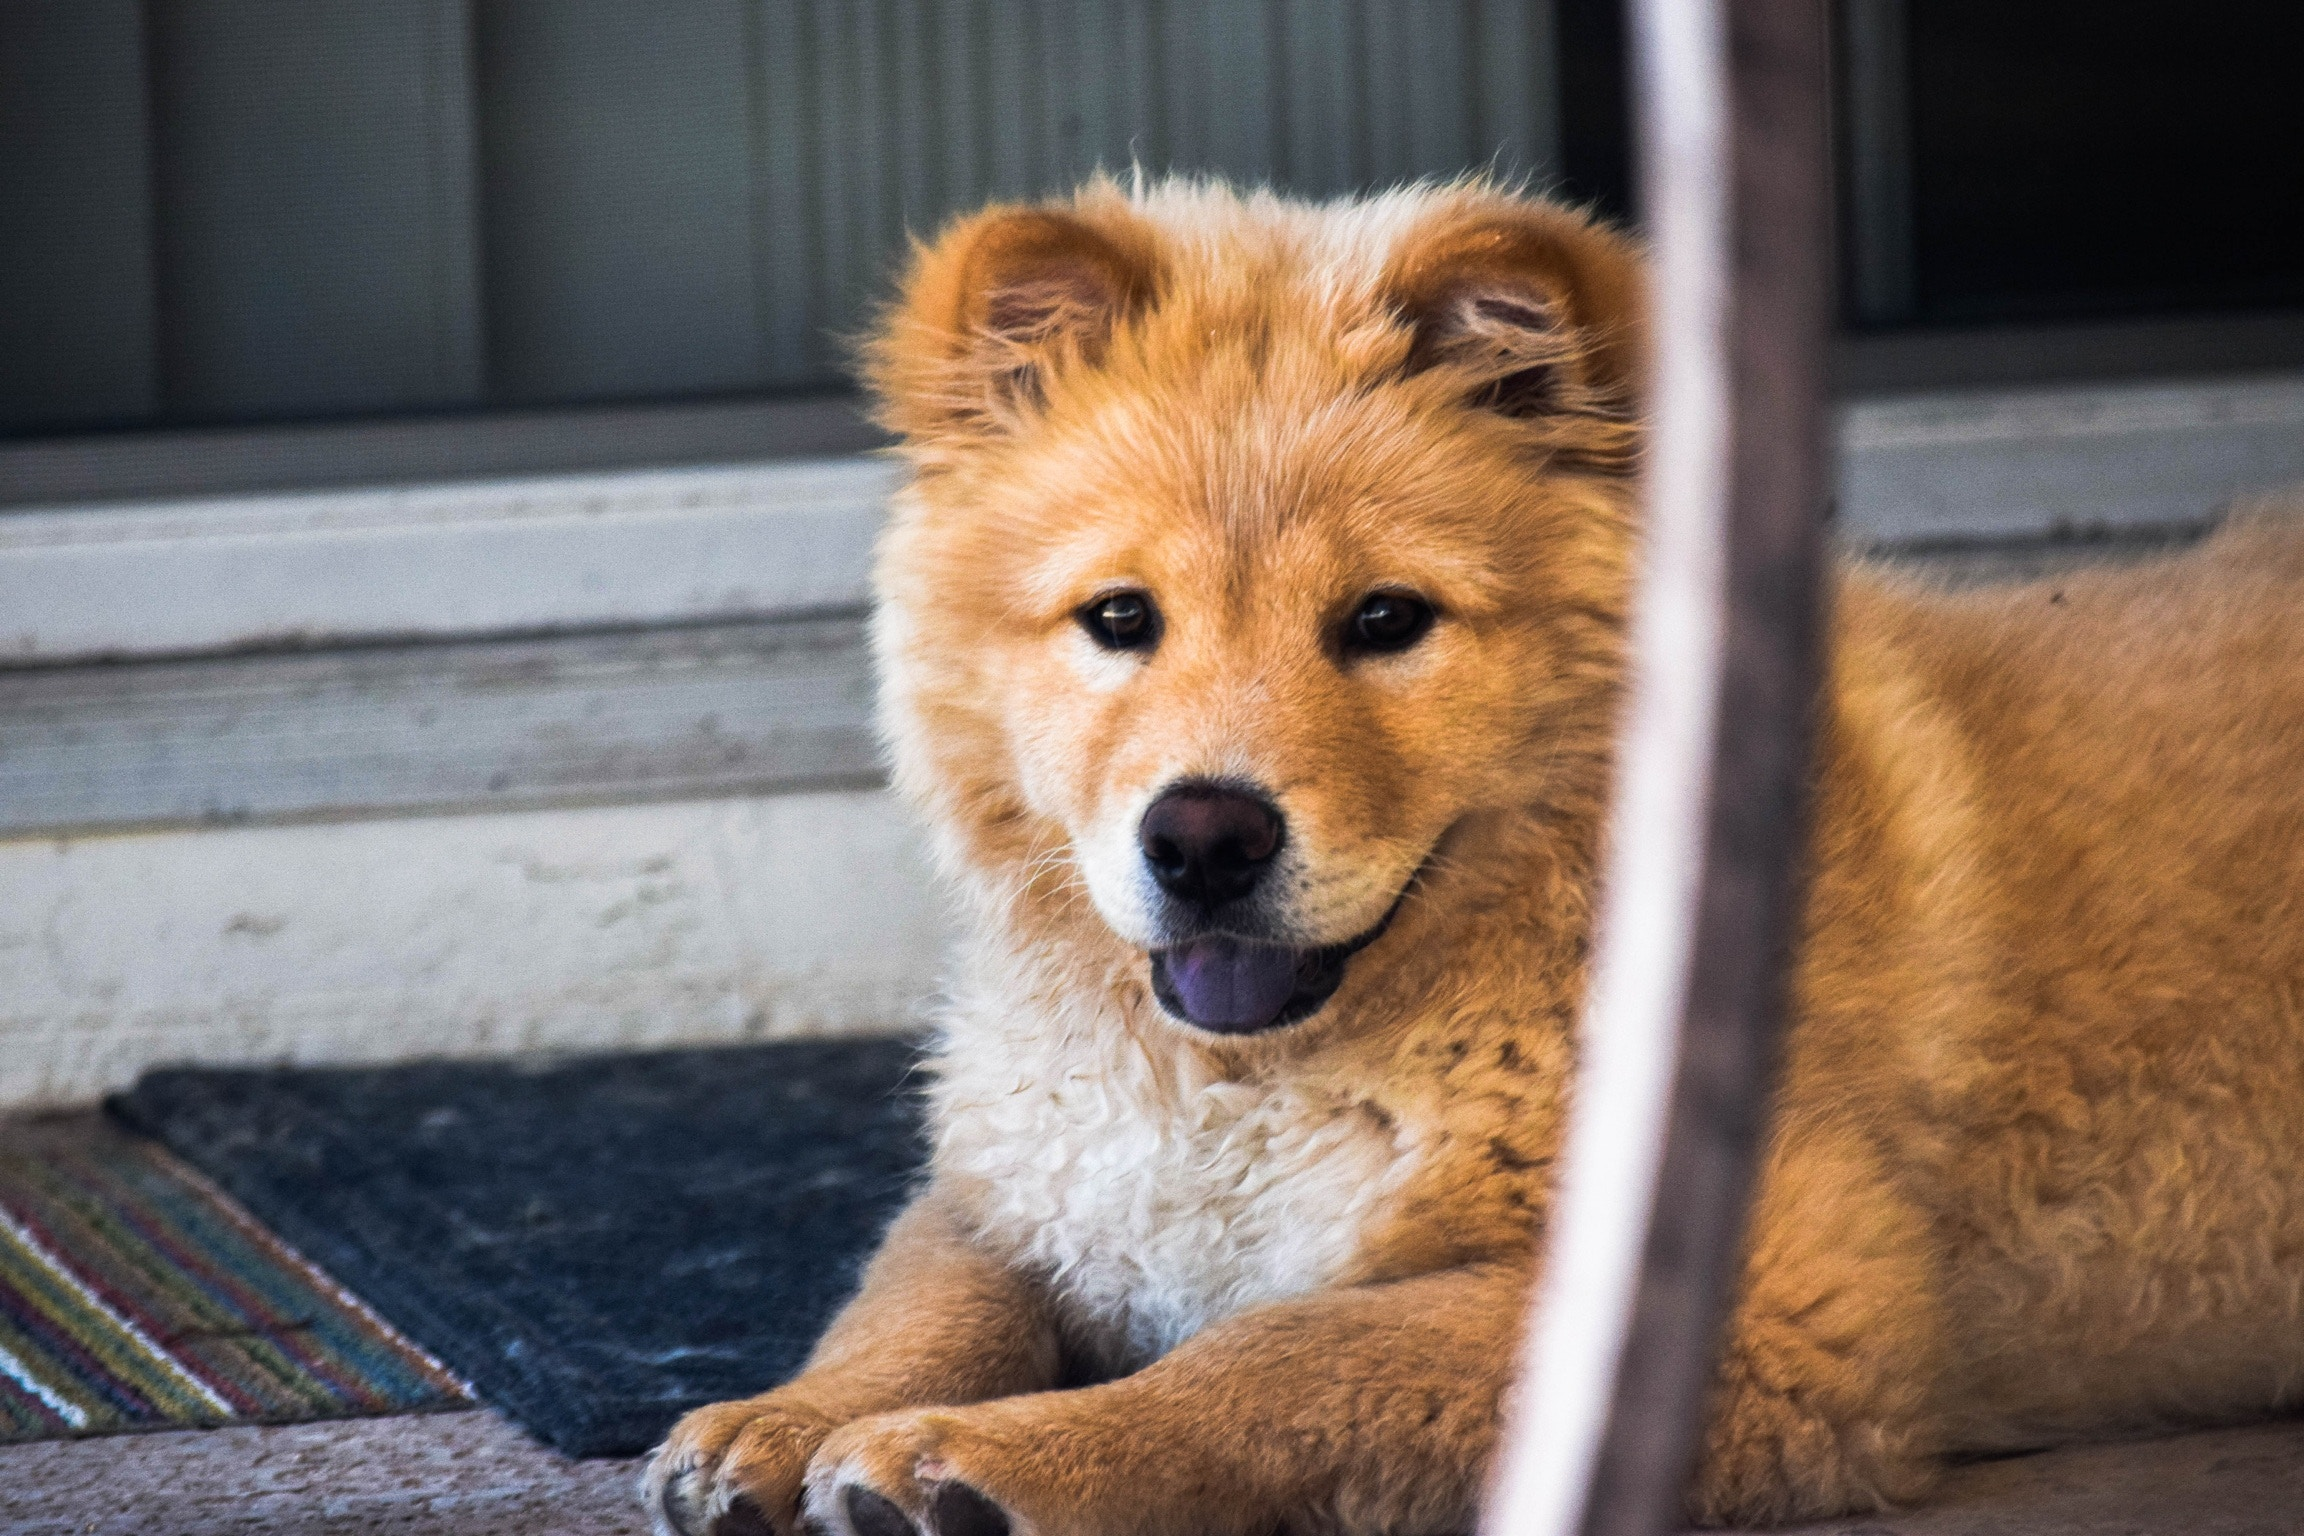 156973 download wallpaper Animals, Dog, Muzzle, Sight, Opinion, Redhead screensavers and pictures for free